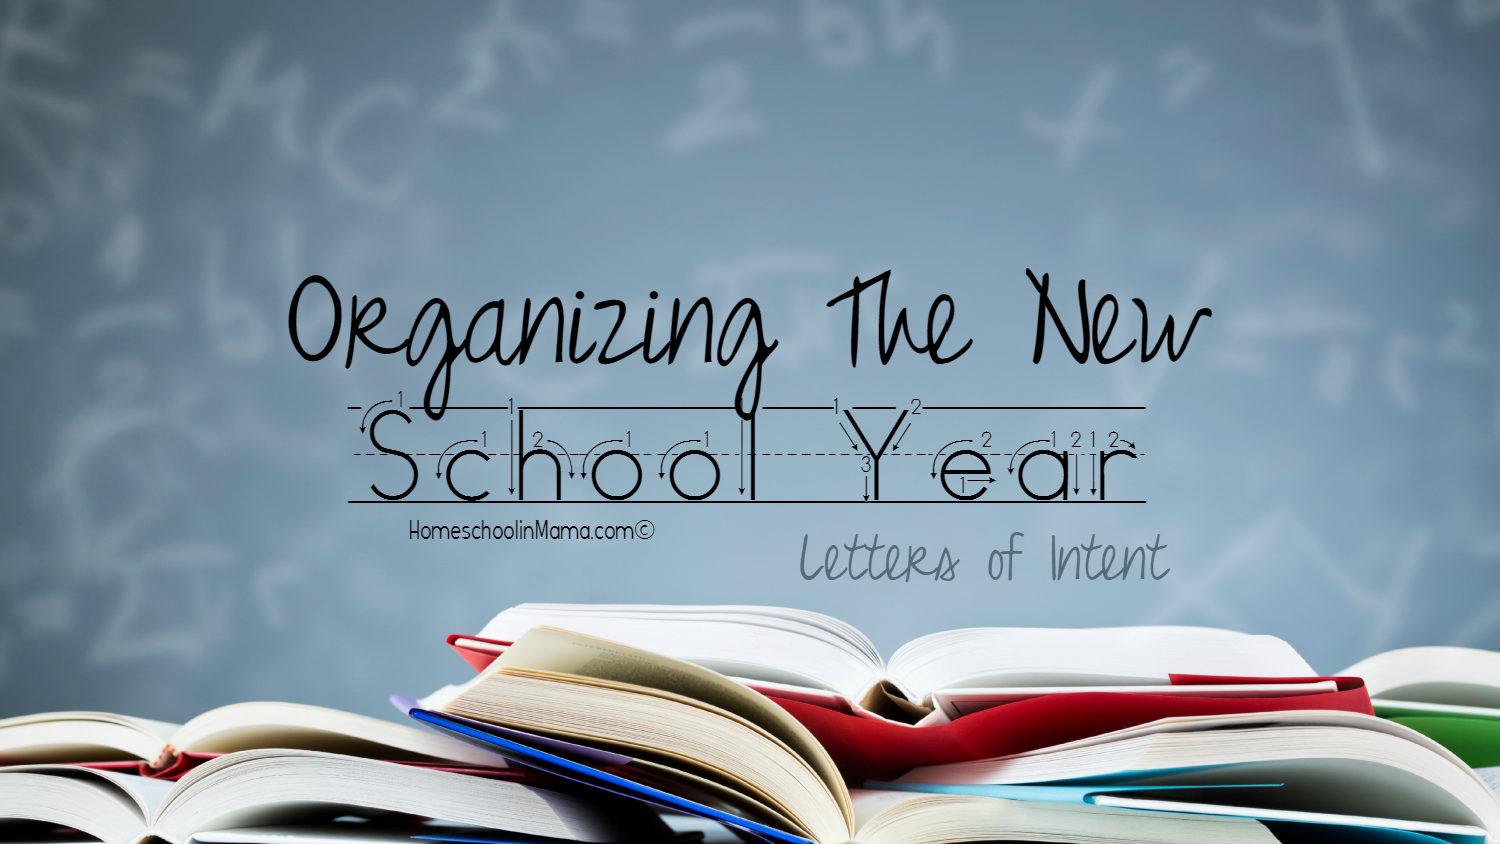 Organizing The New School Year - Letters of Intent with free printable.